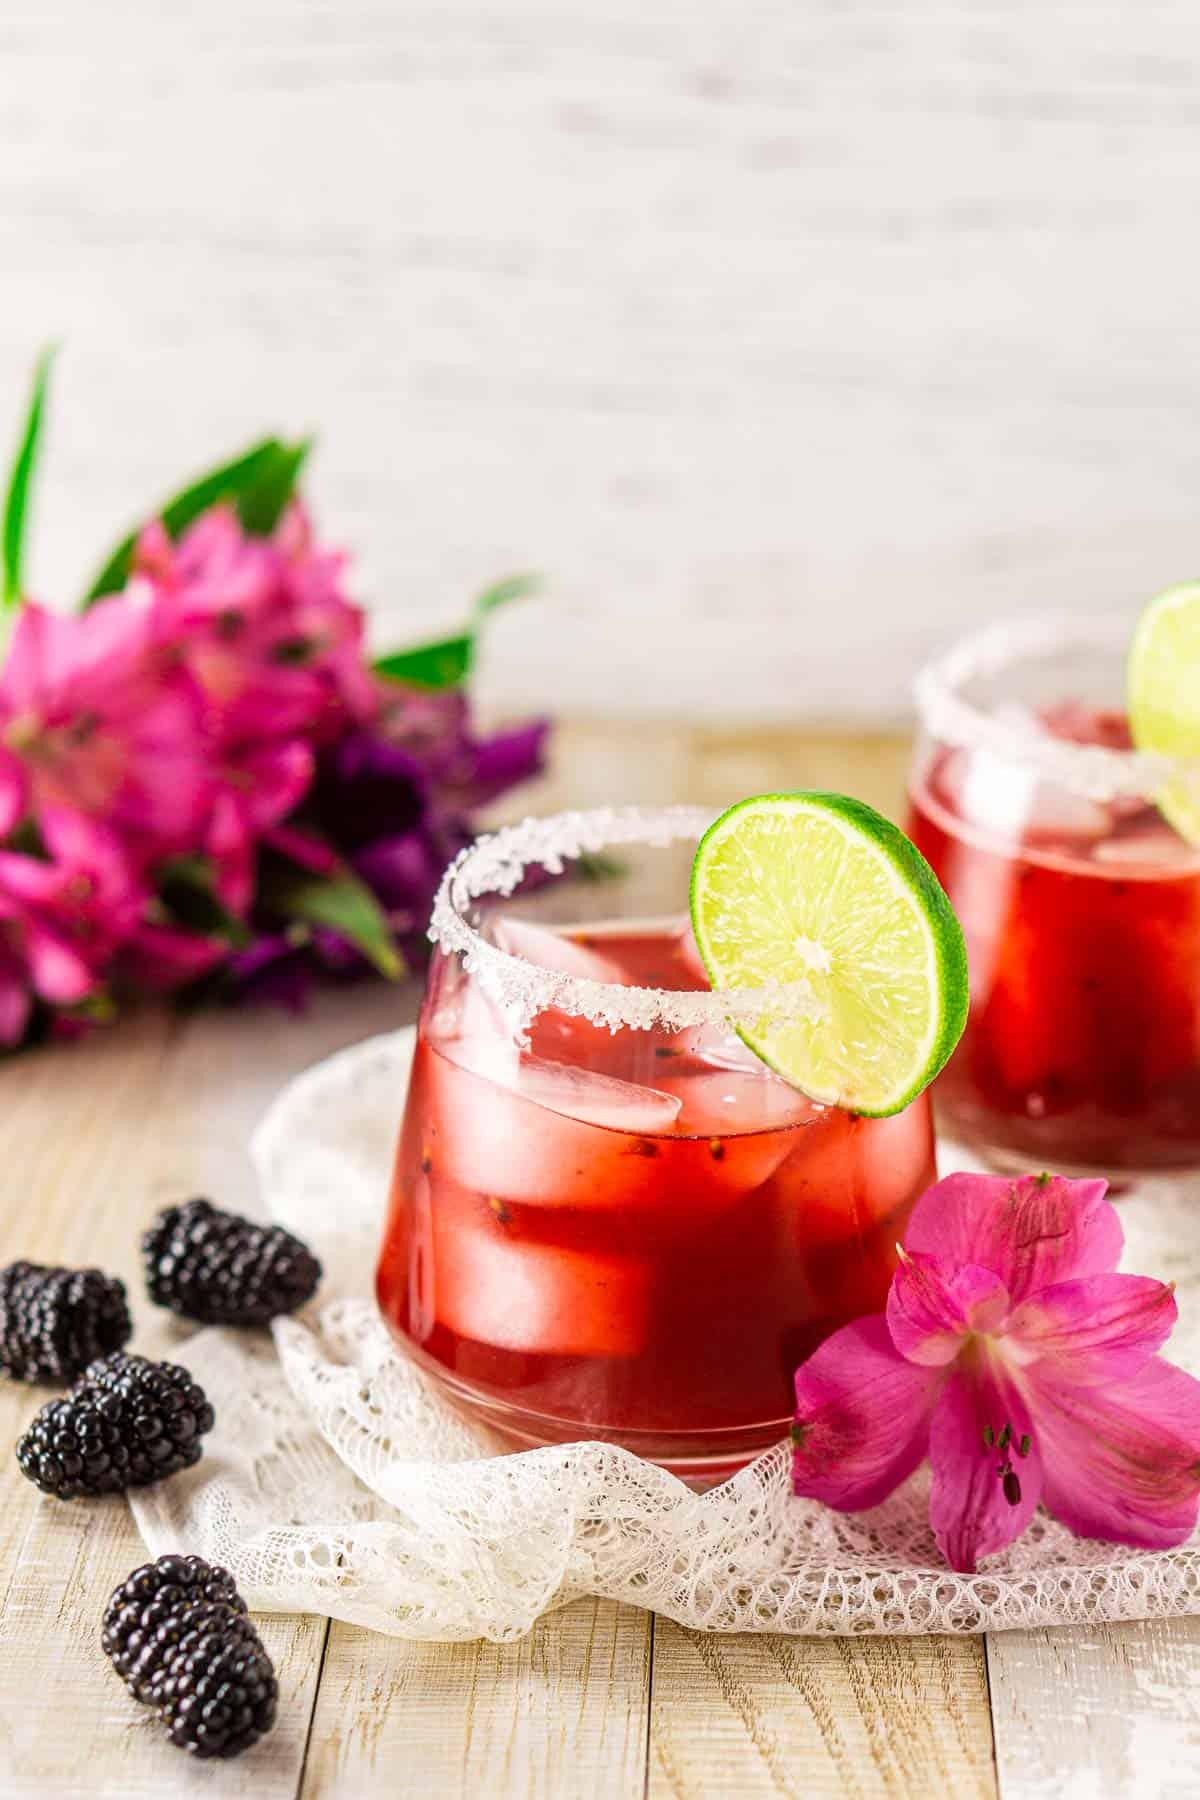 Two fresh blackberry margaritas on lace with pink and purple flowers in the background.